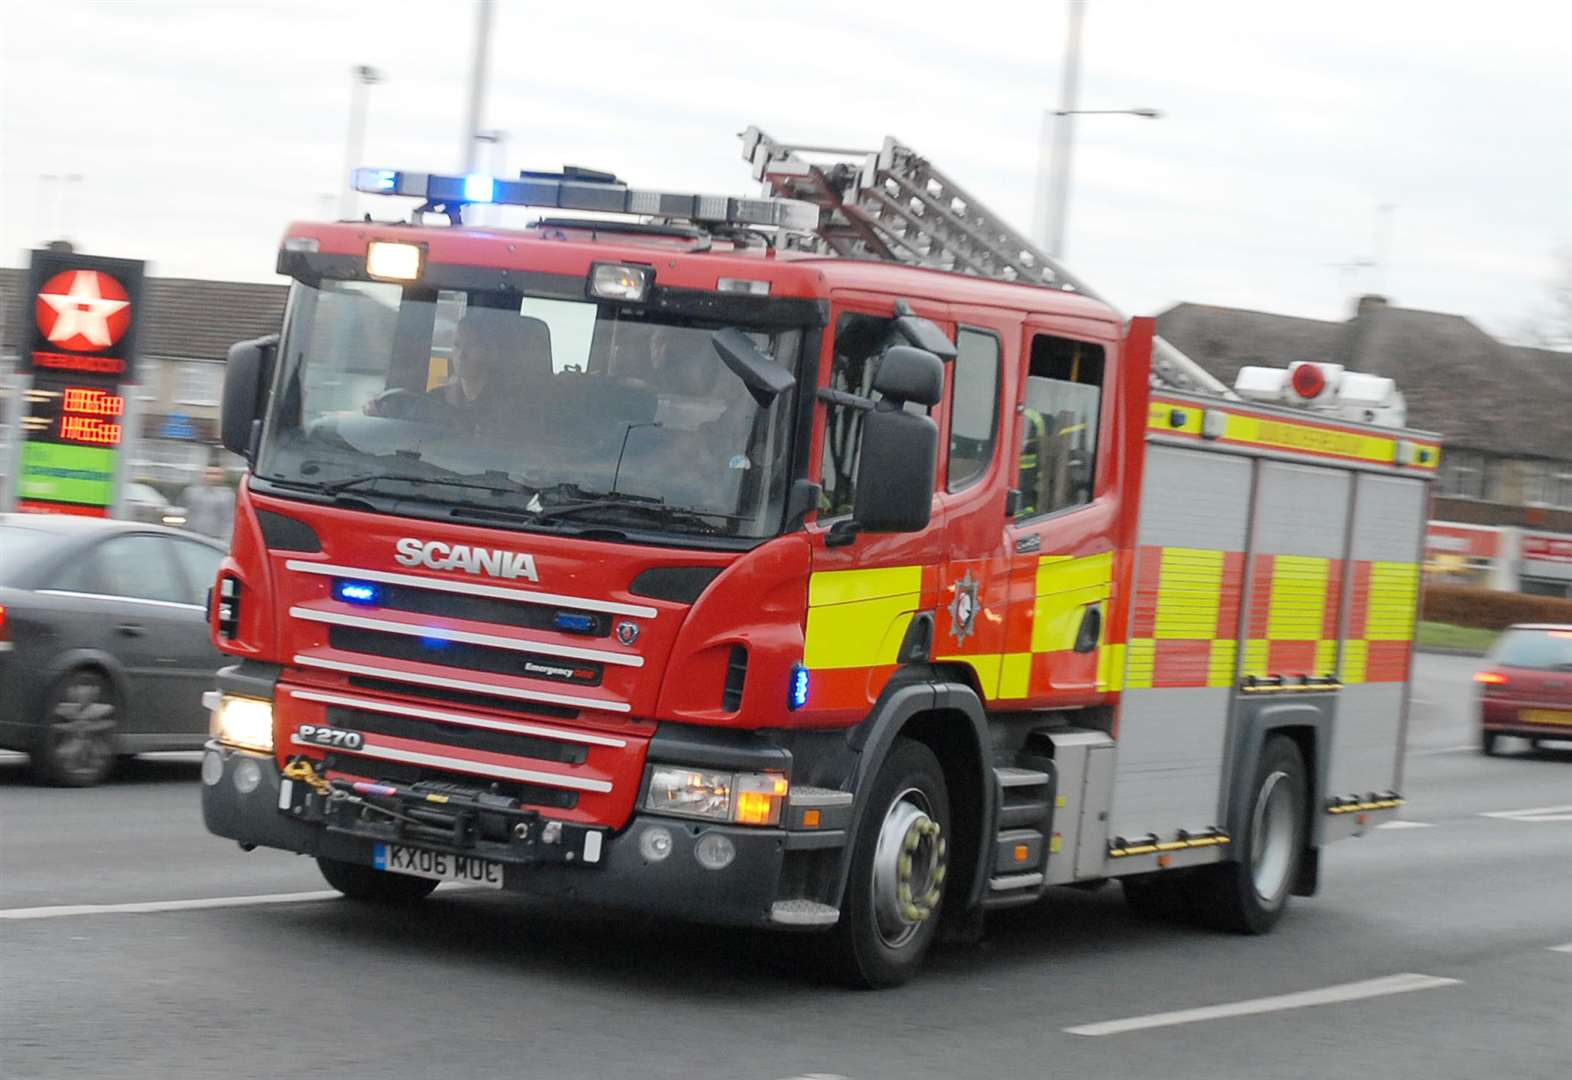 Arsonists target car in Newmarket housing estate